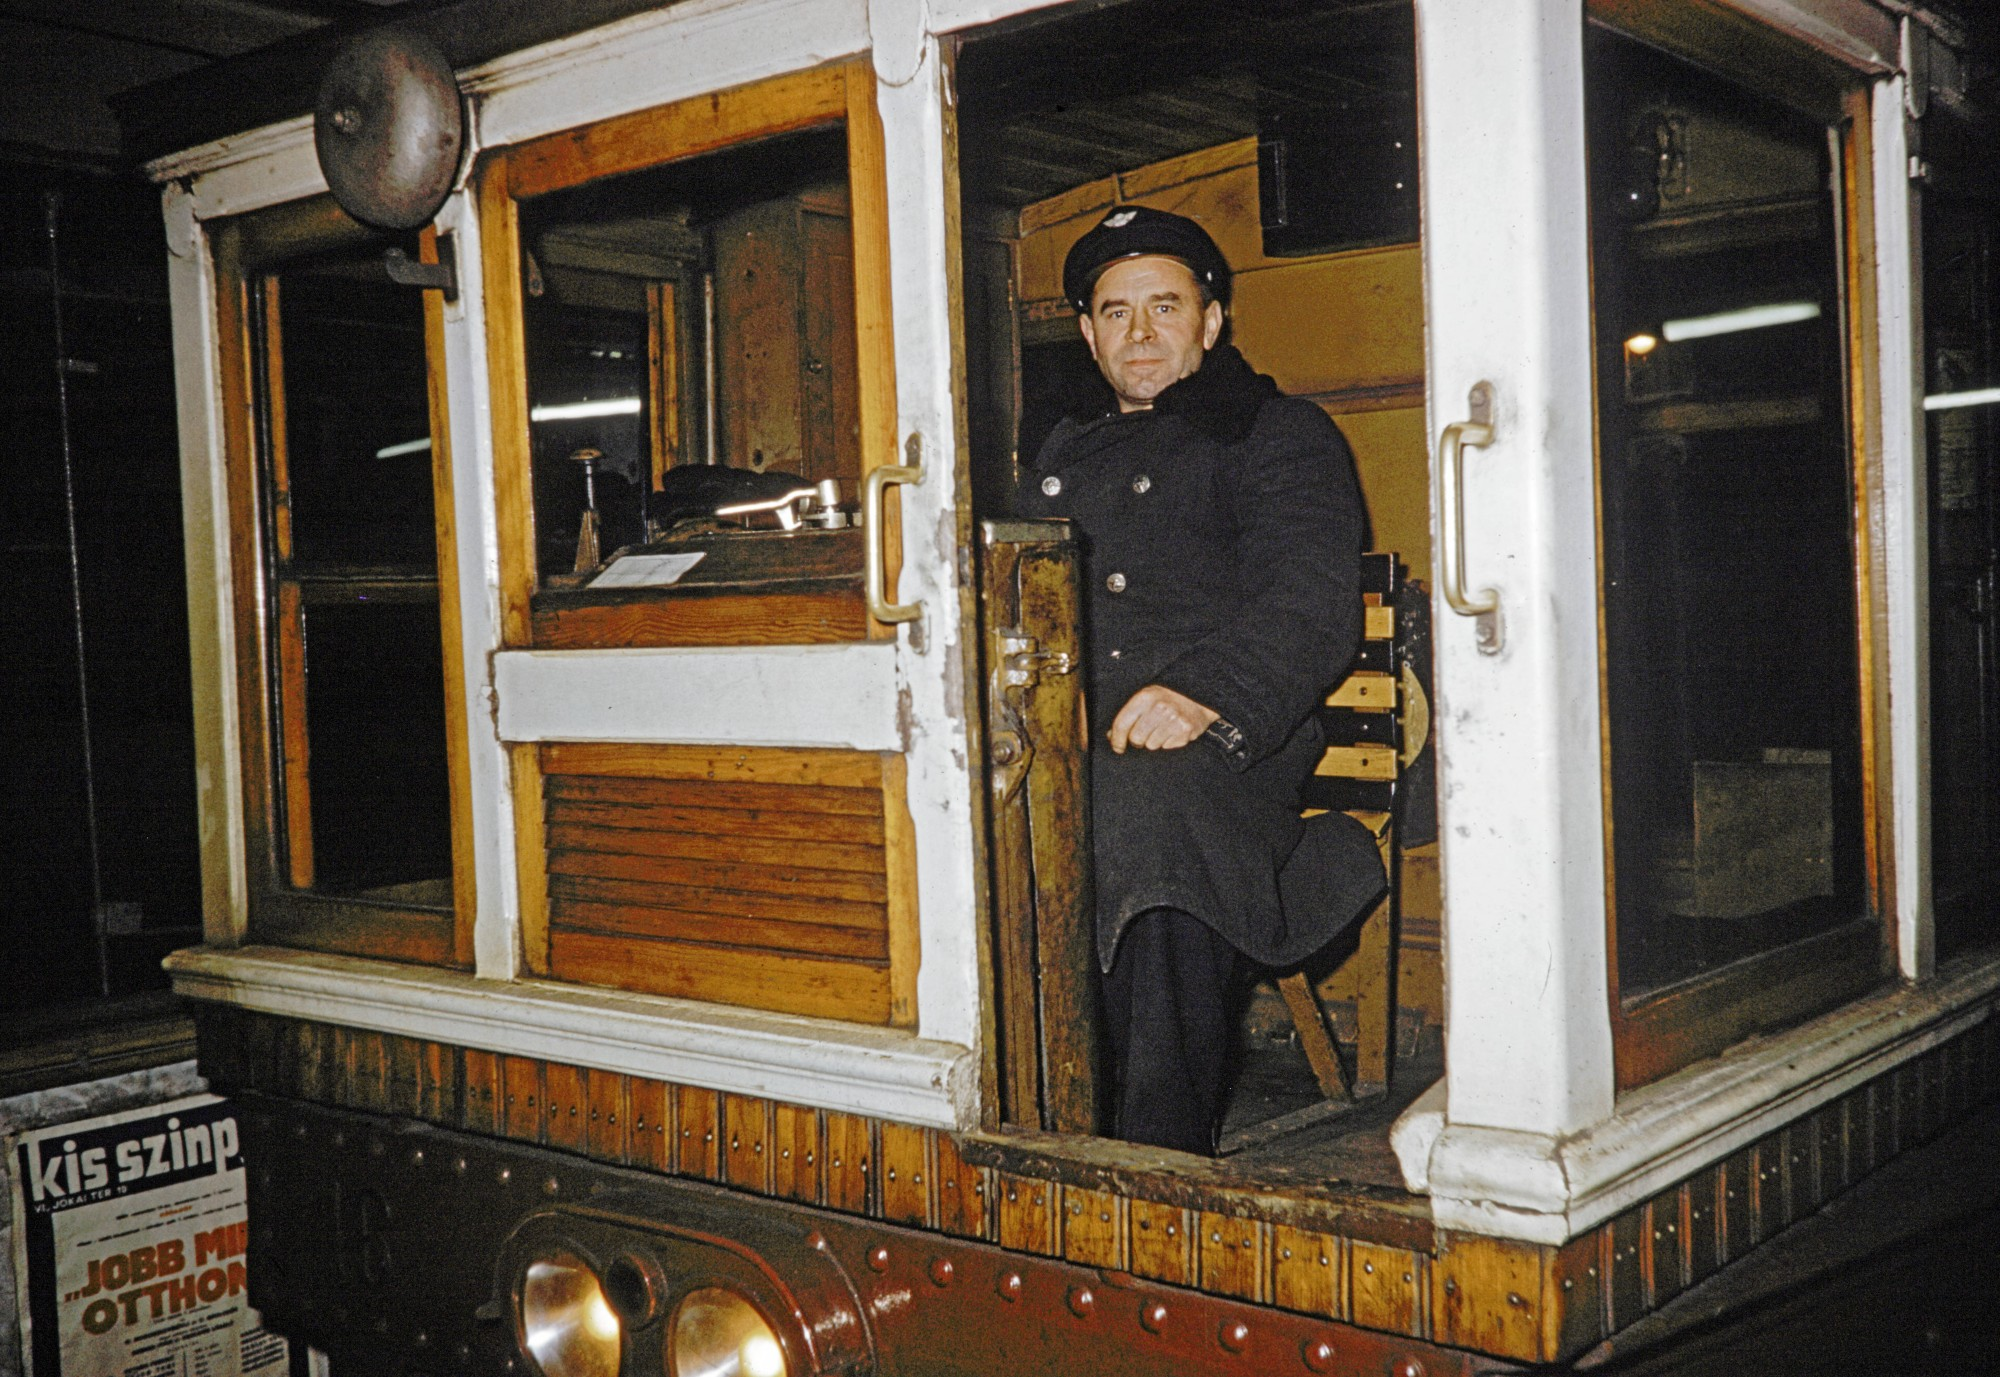 1960с motorman on subway train in Budapest